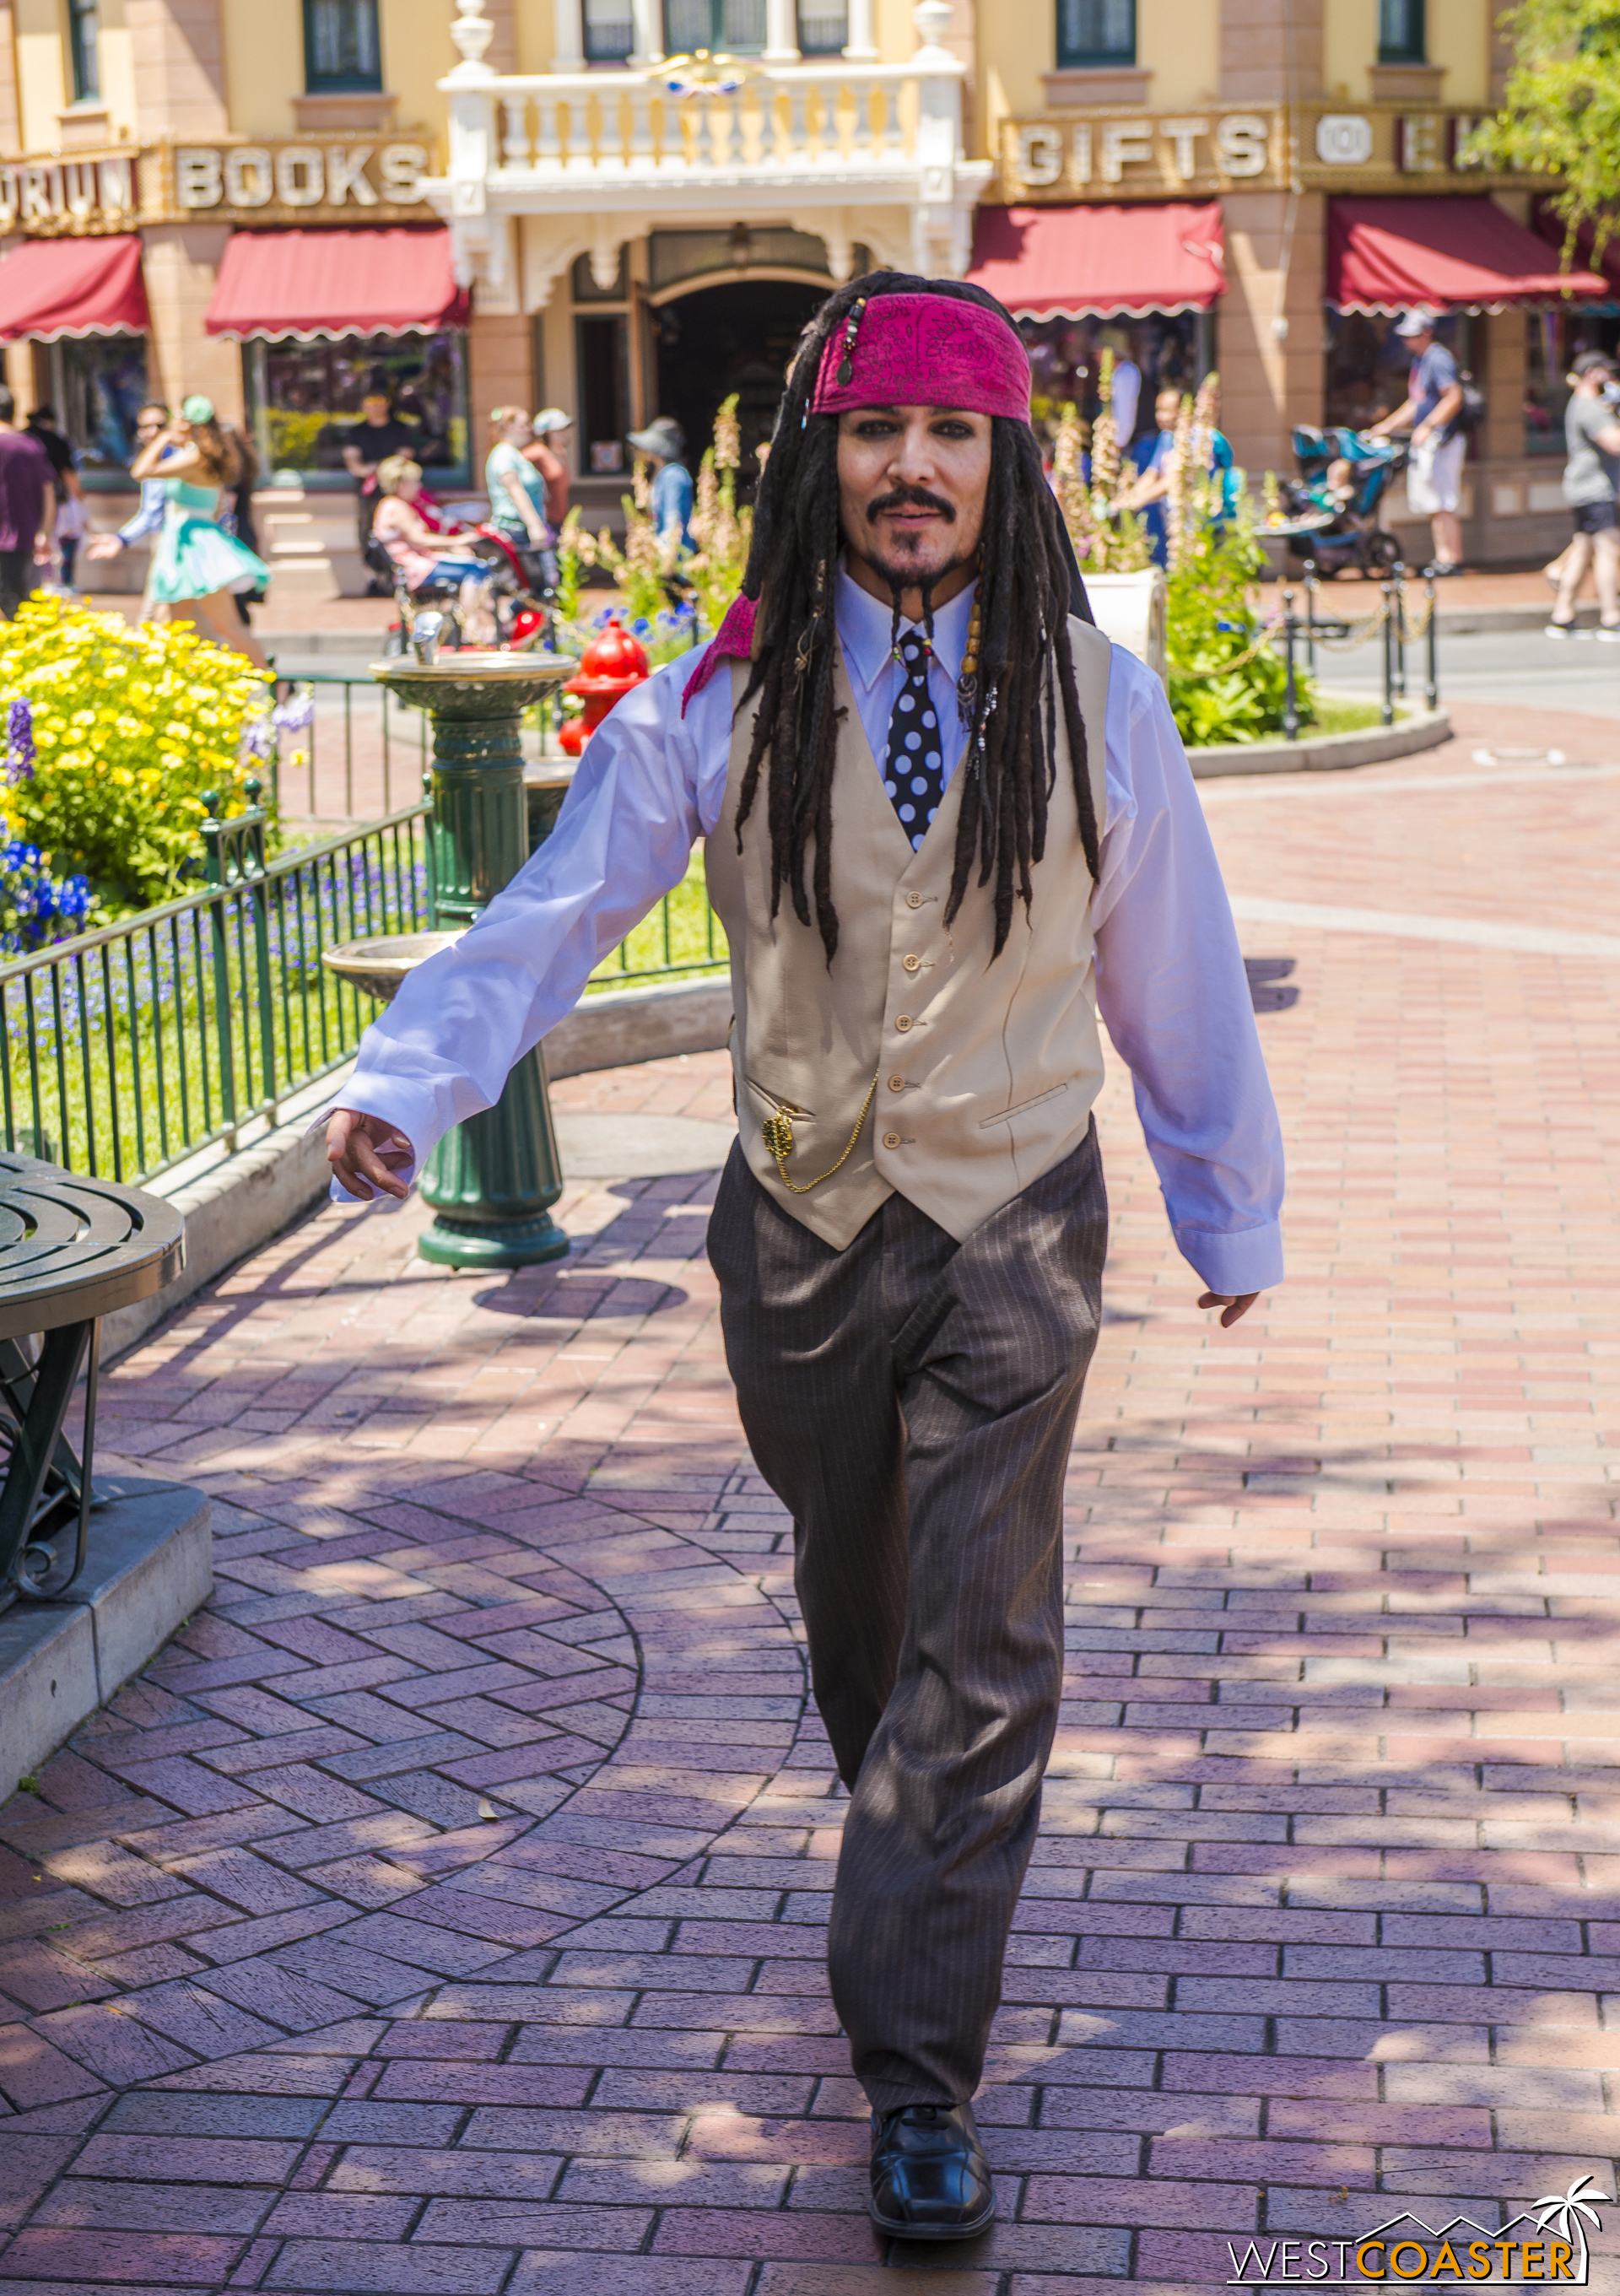 Frequent Disneyland visitors may recognize this gentleman, who typically walks around looking like Captain Jack Sparrow.